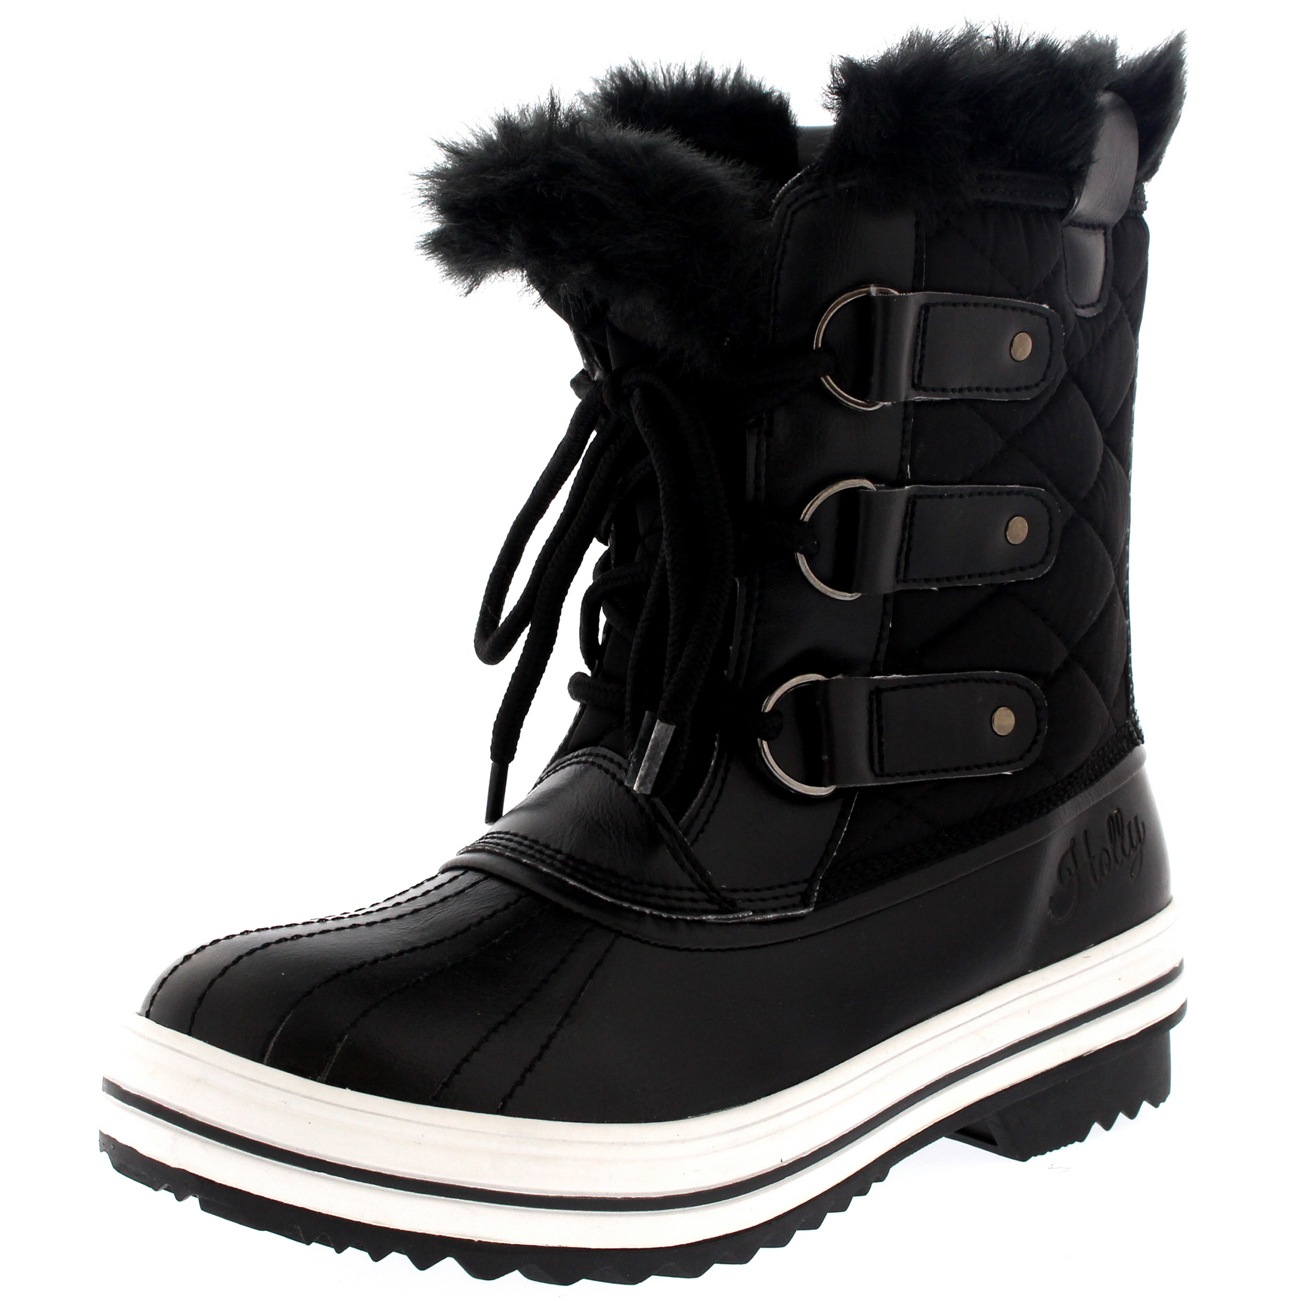 Womens-Snow-Boot-Nylon-Short-Winter-Snow-Fur-